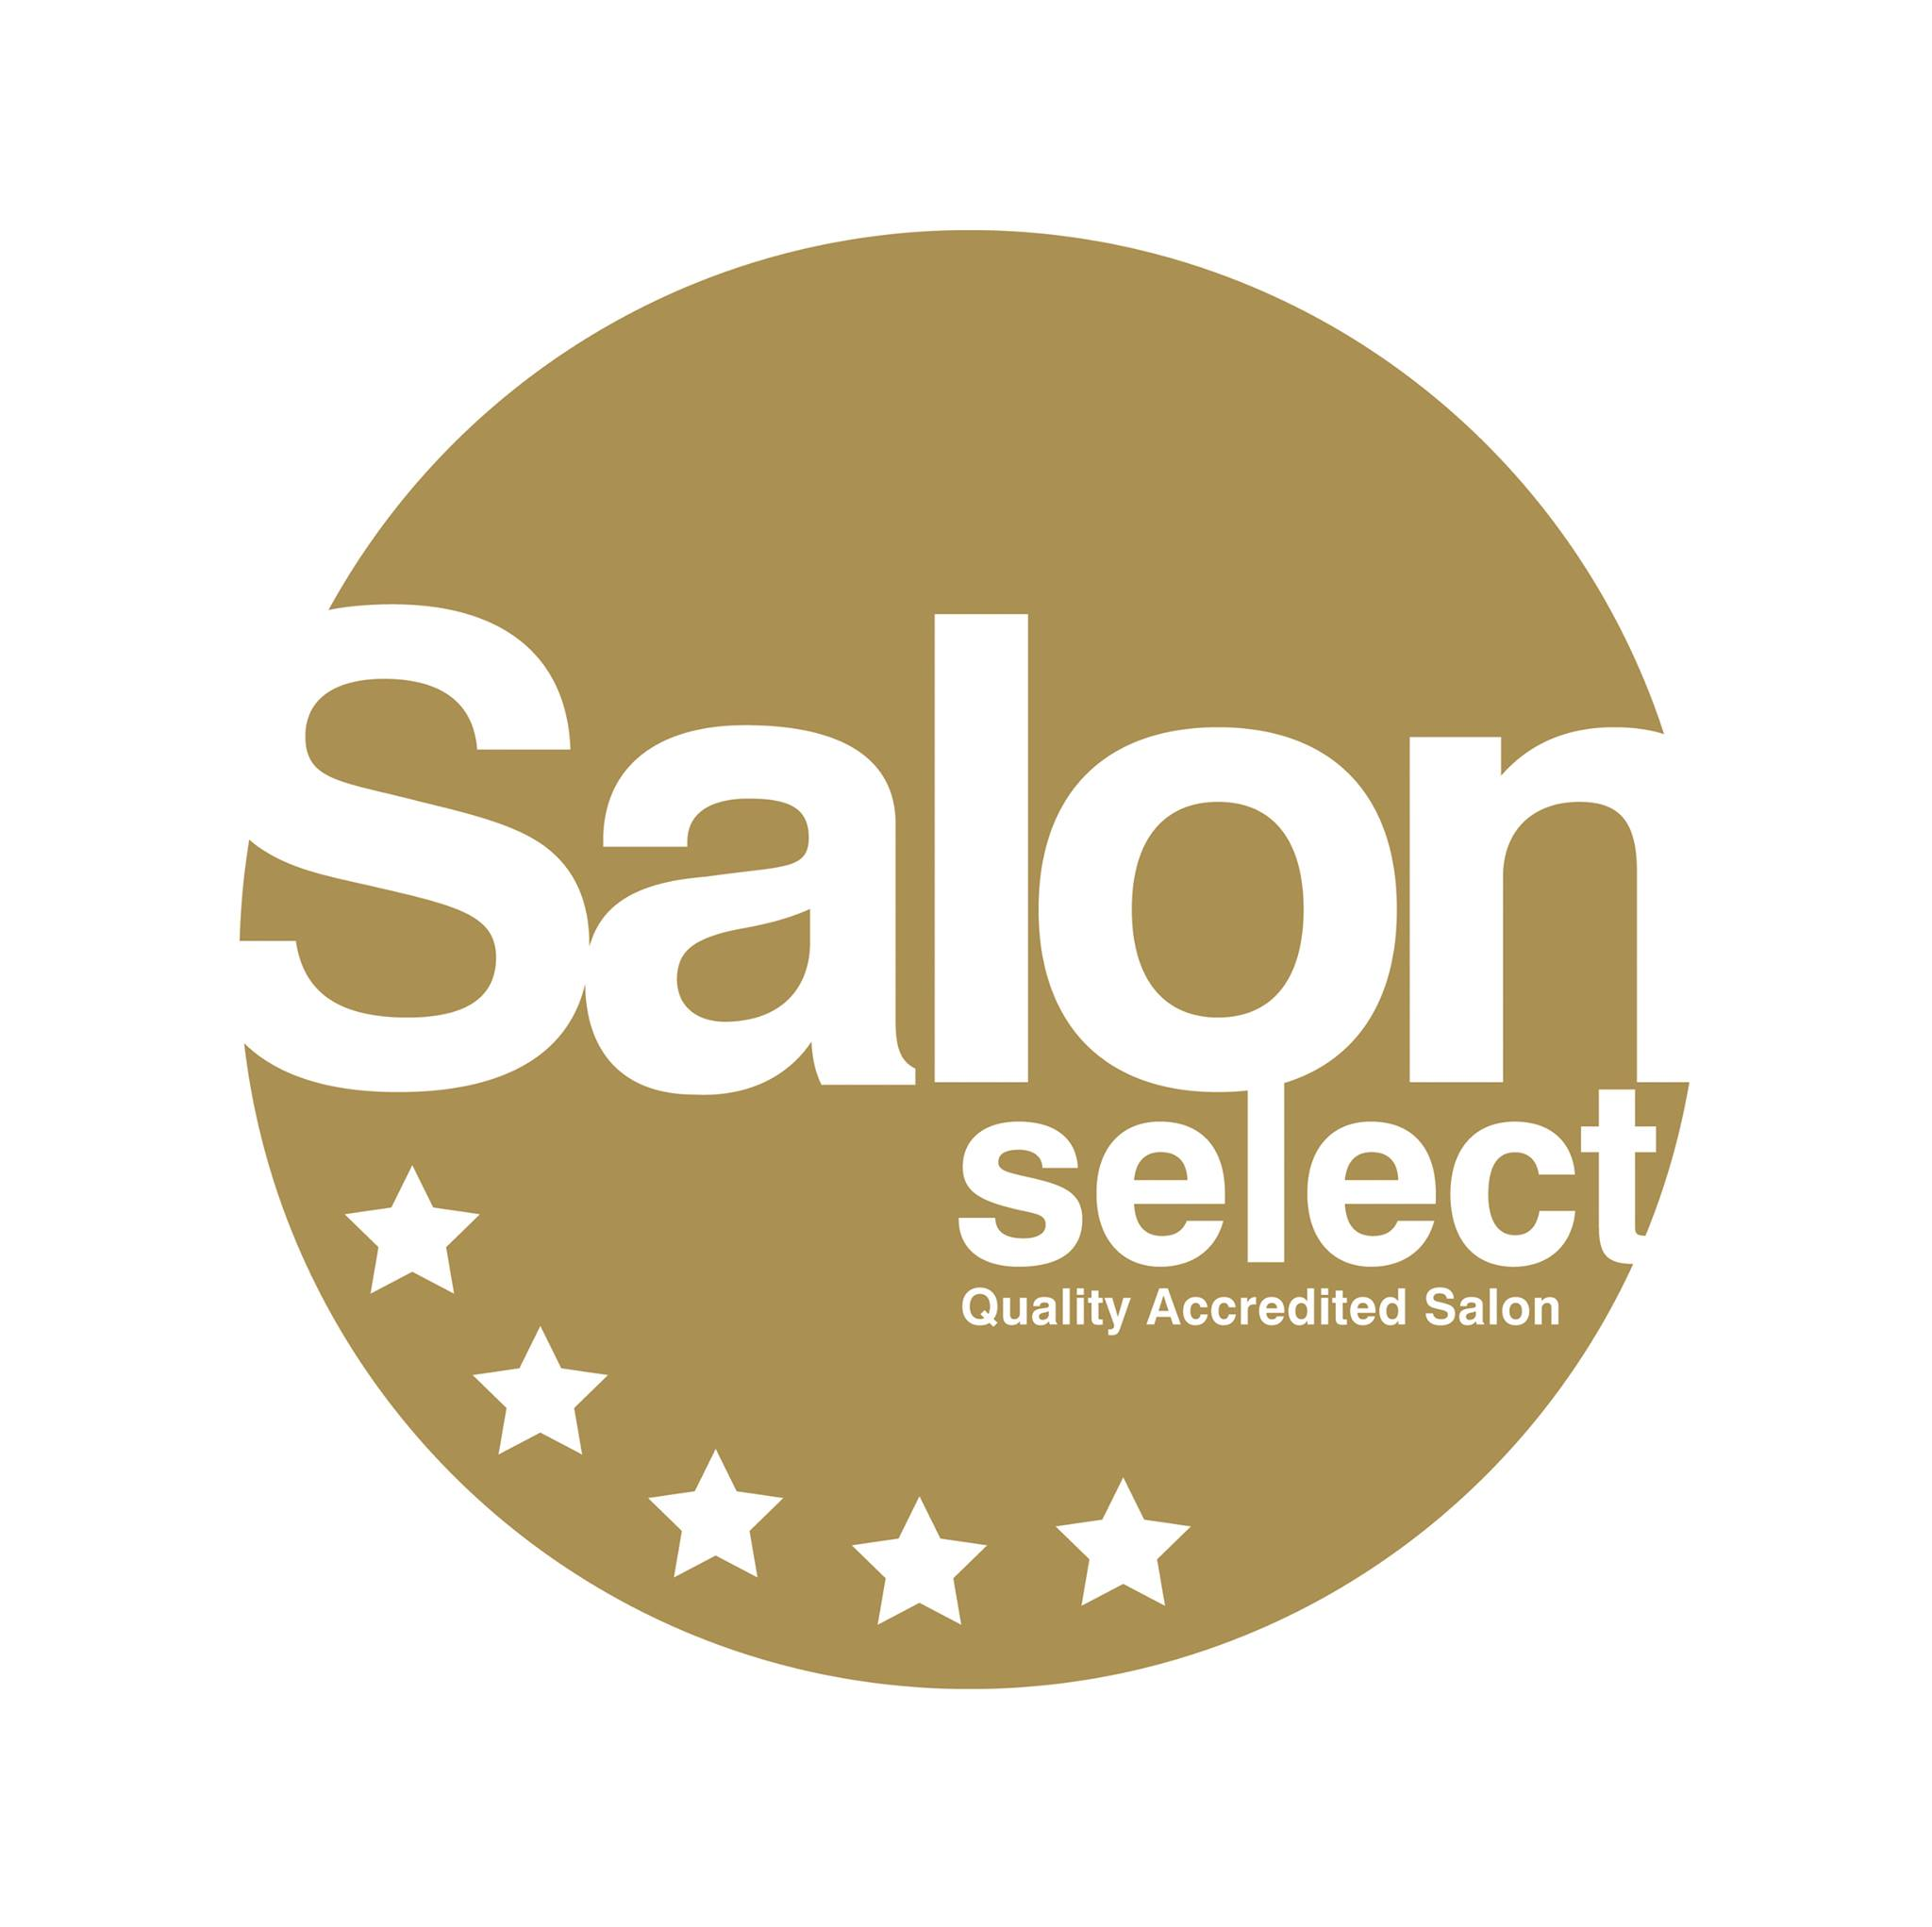 gold salon select quality accredited salon